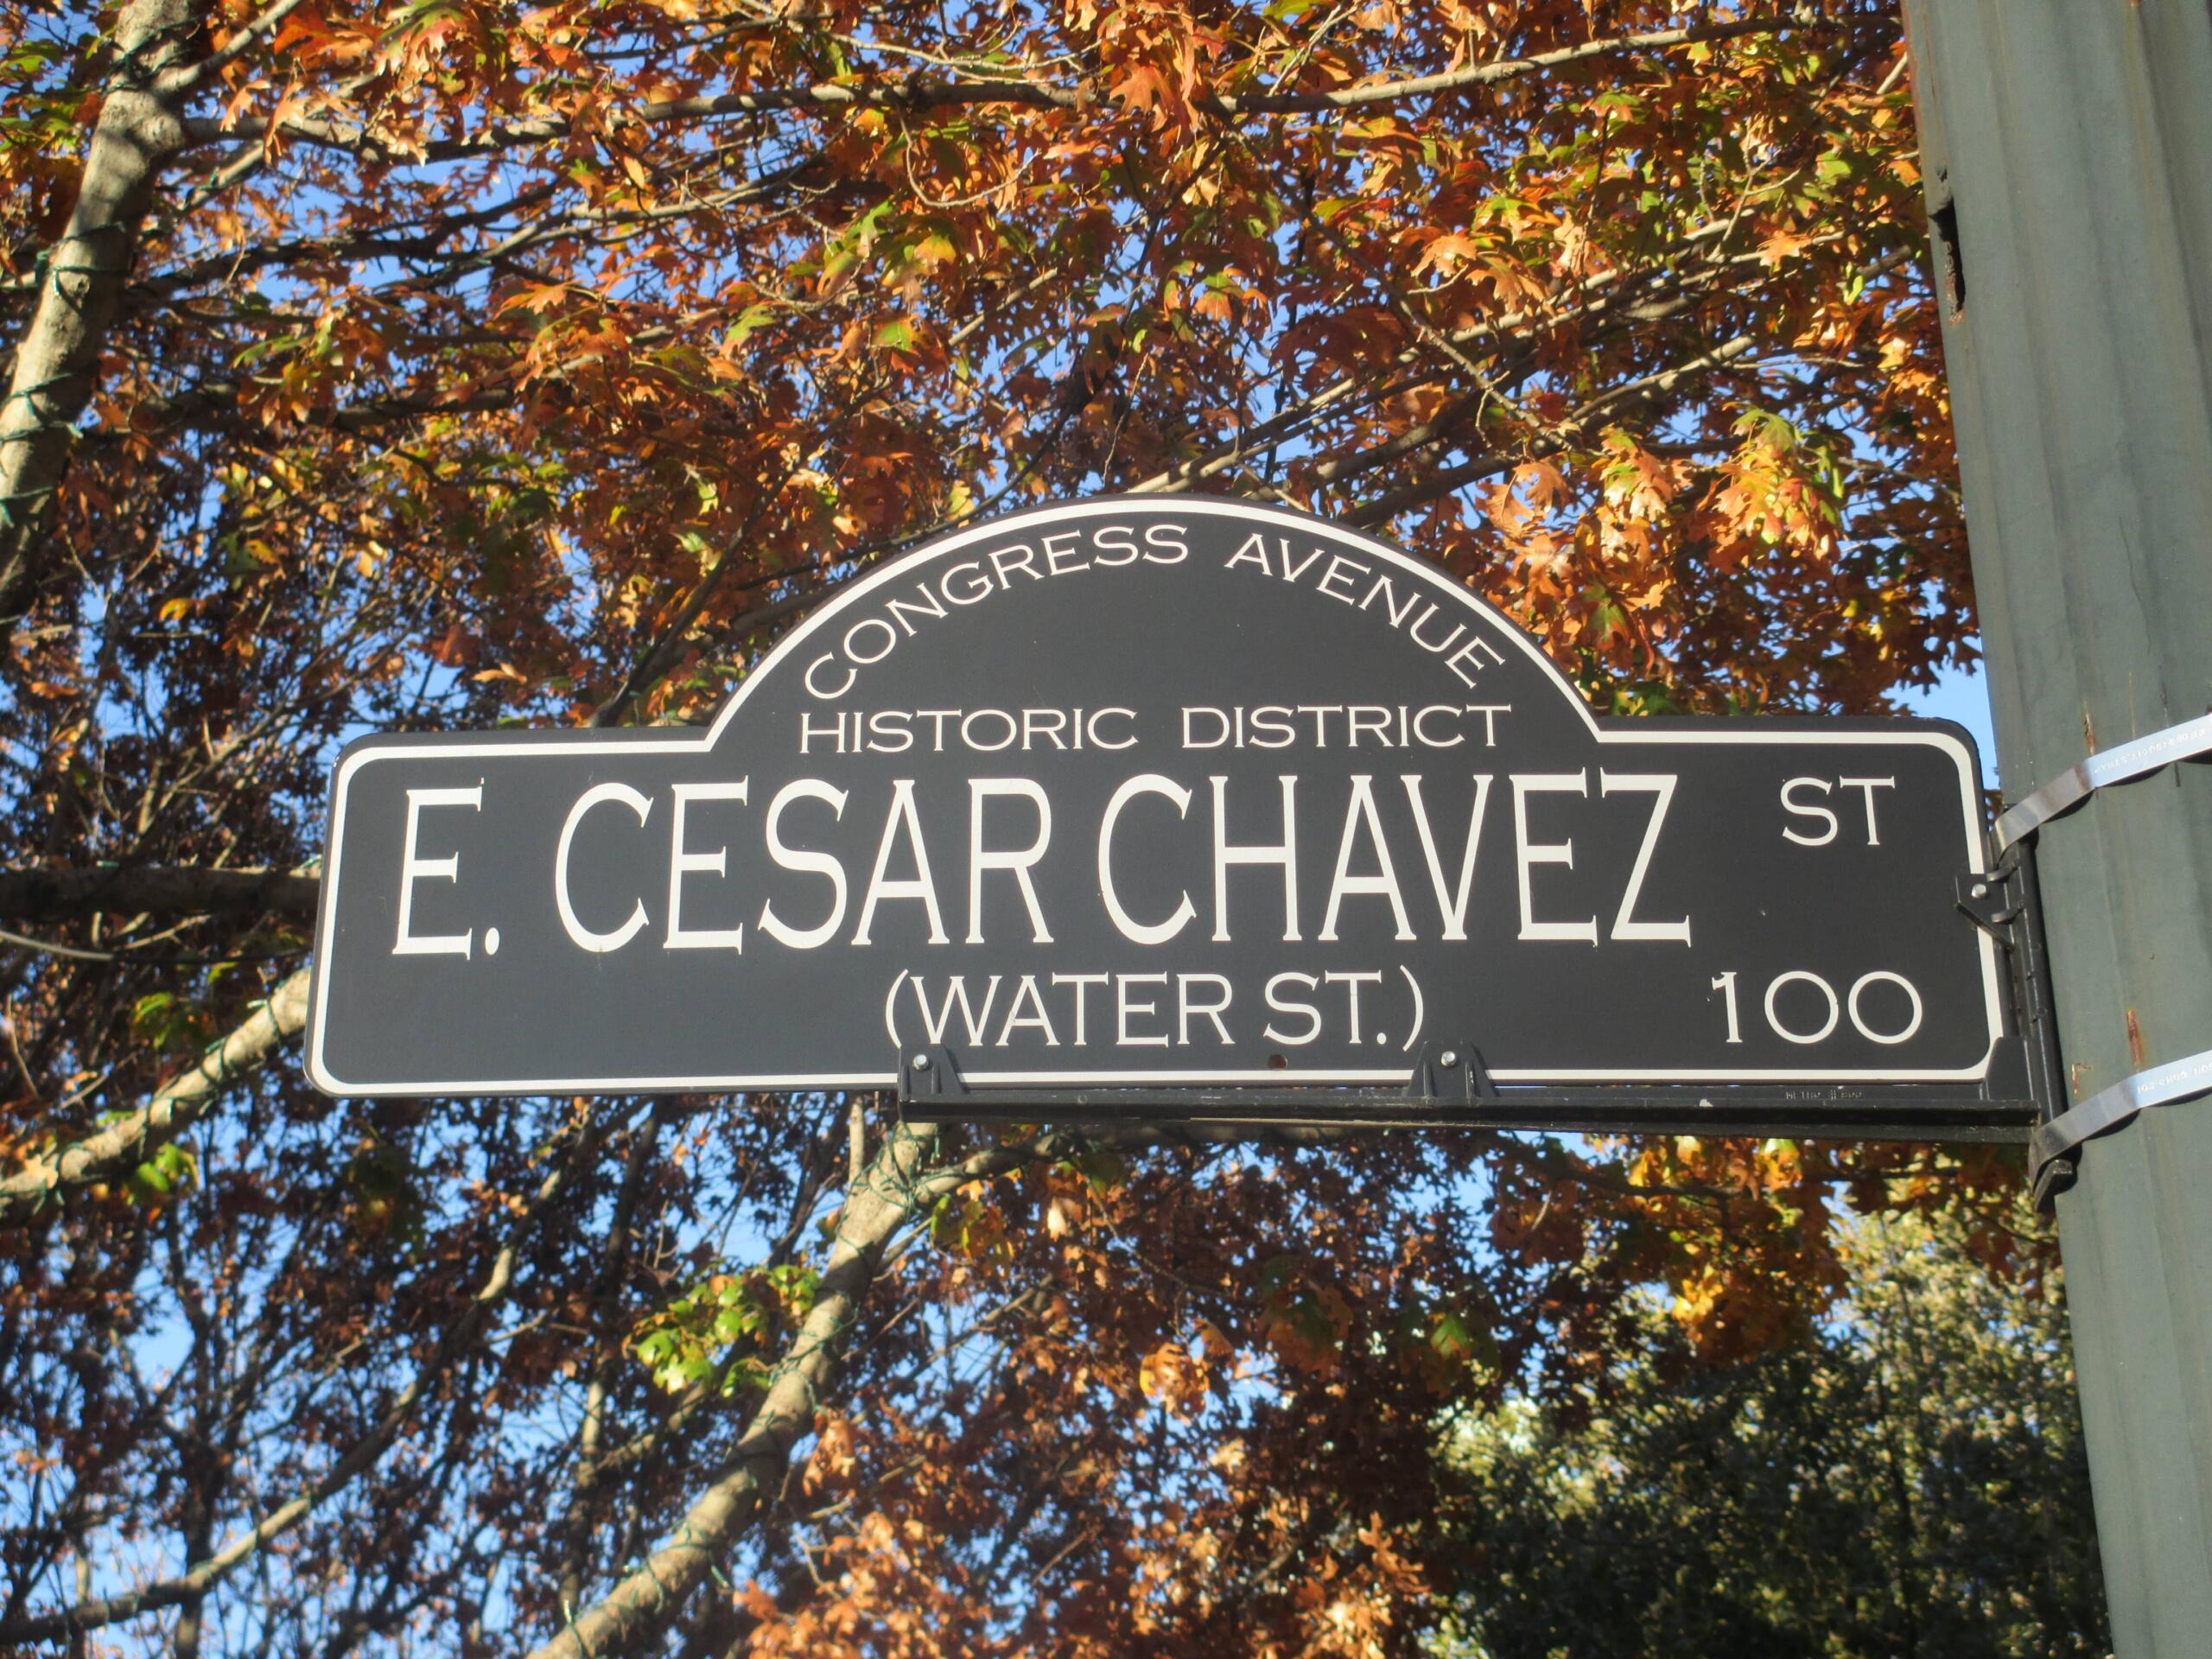 No machine-readable author provided. Billy Hathorn assumed (based on copyright claims)., Cesar Chavez Street sign in Austin, TXIMG 6250 , CC BY 3.0